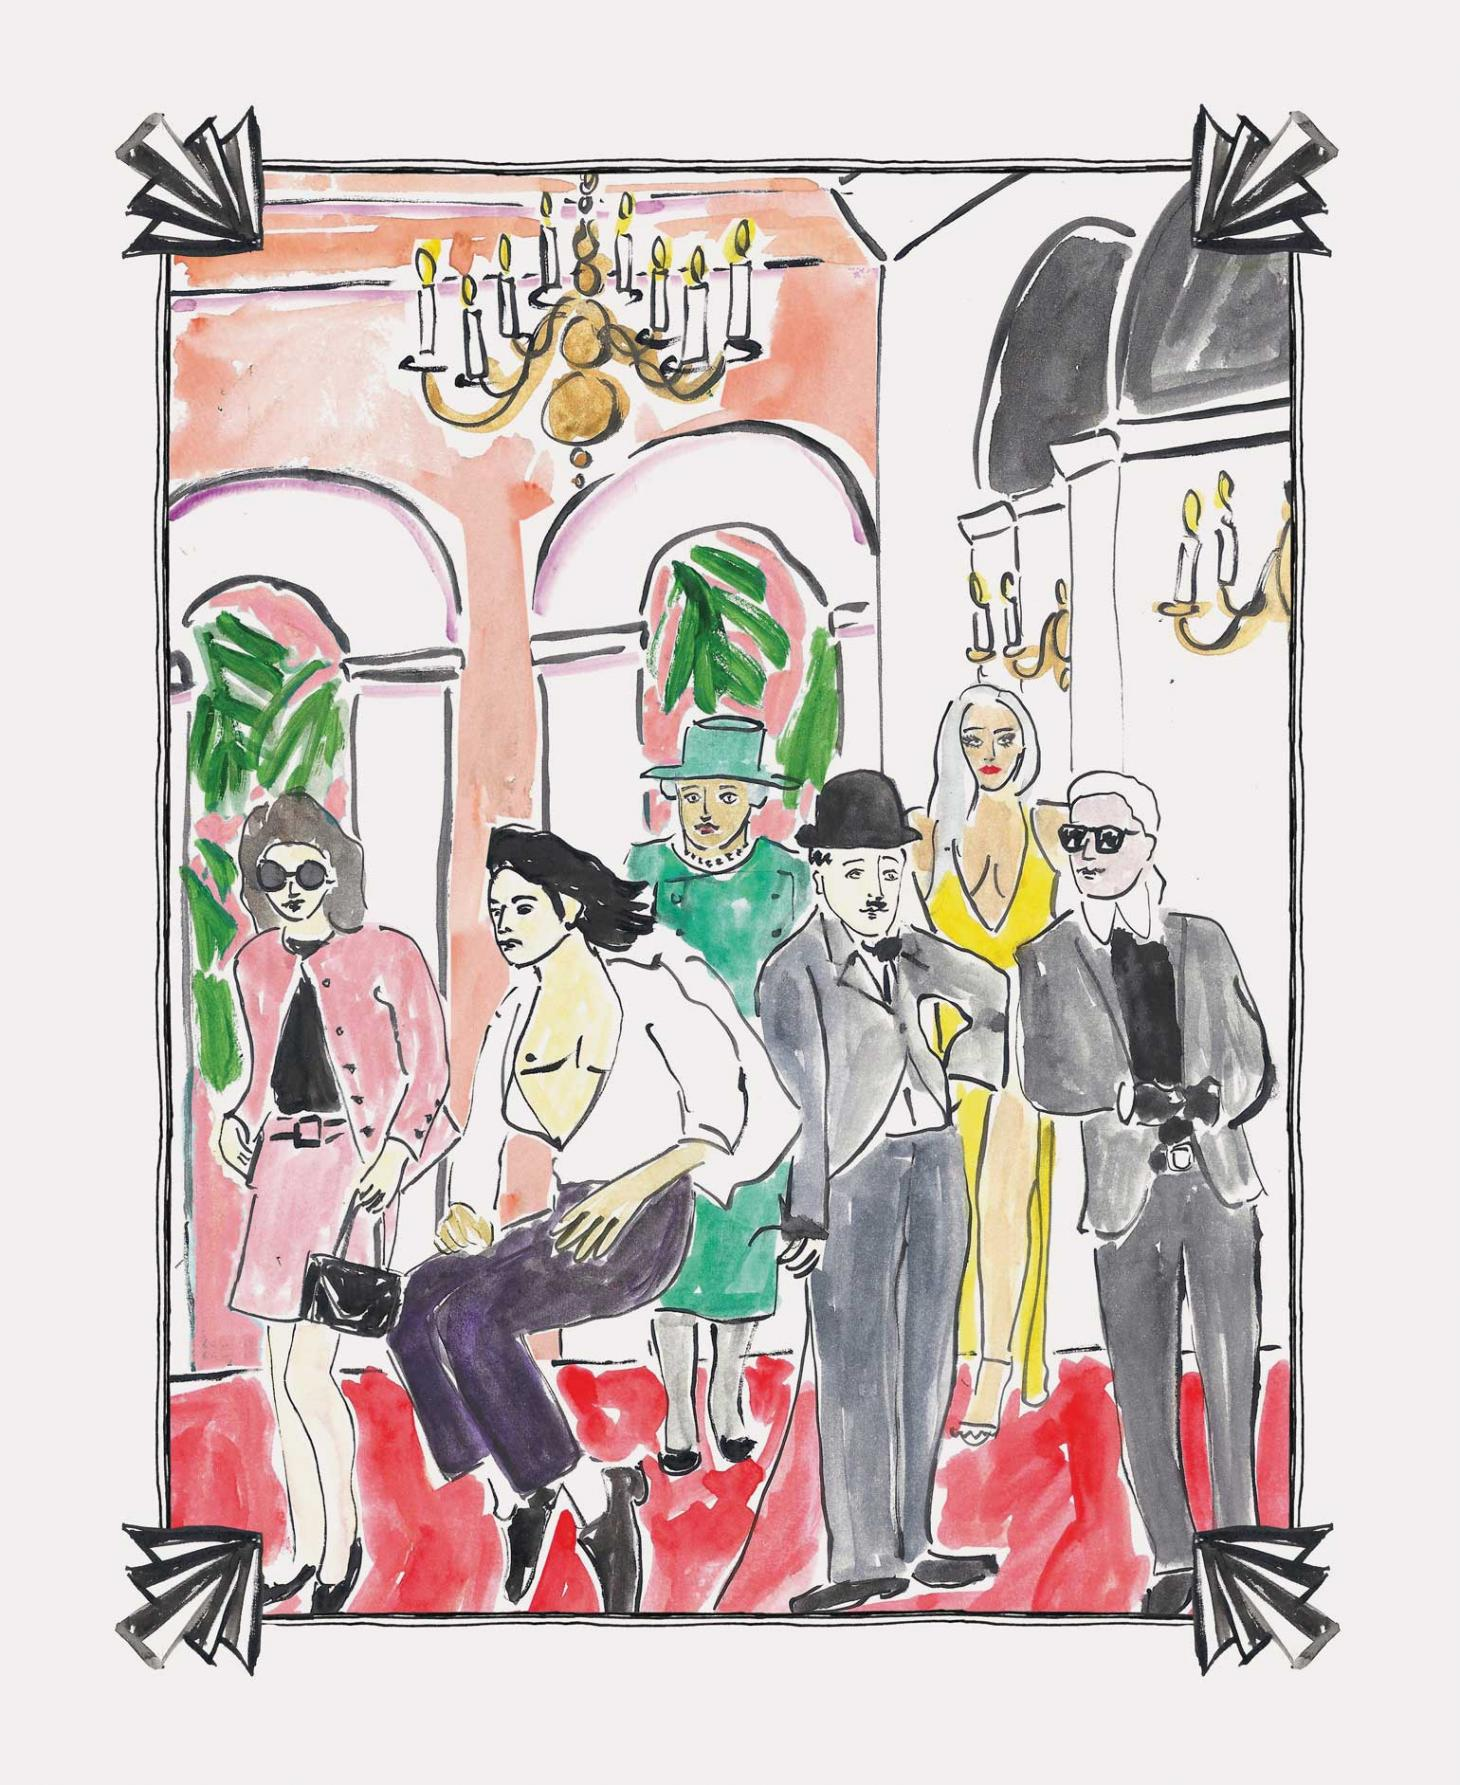 Raffles Residents, illustration by Luke Edward Halls